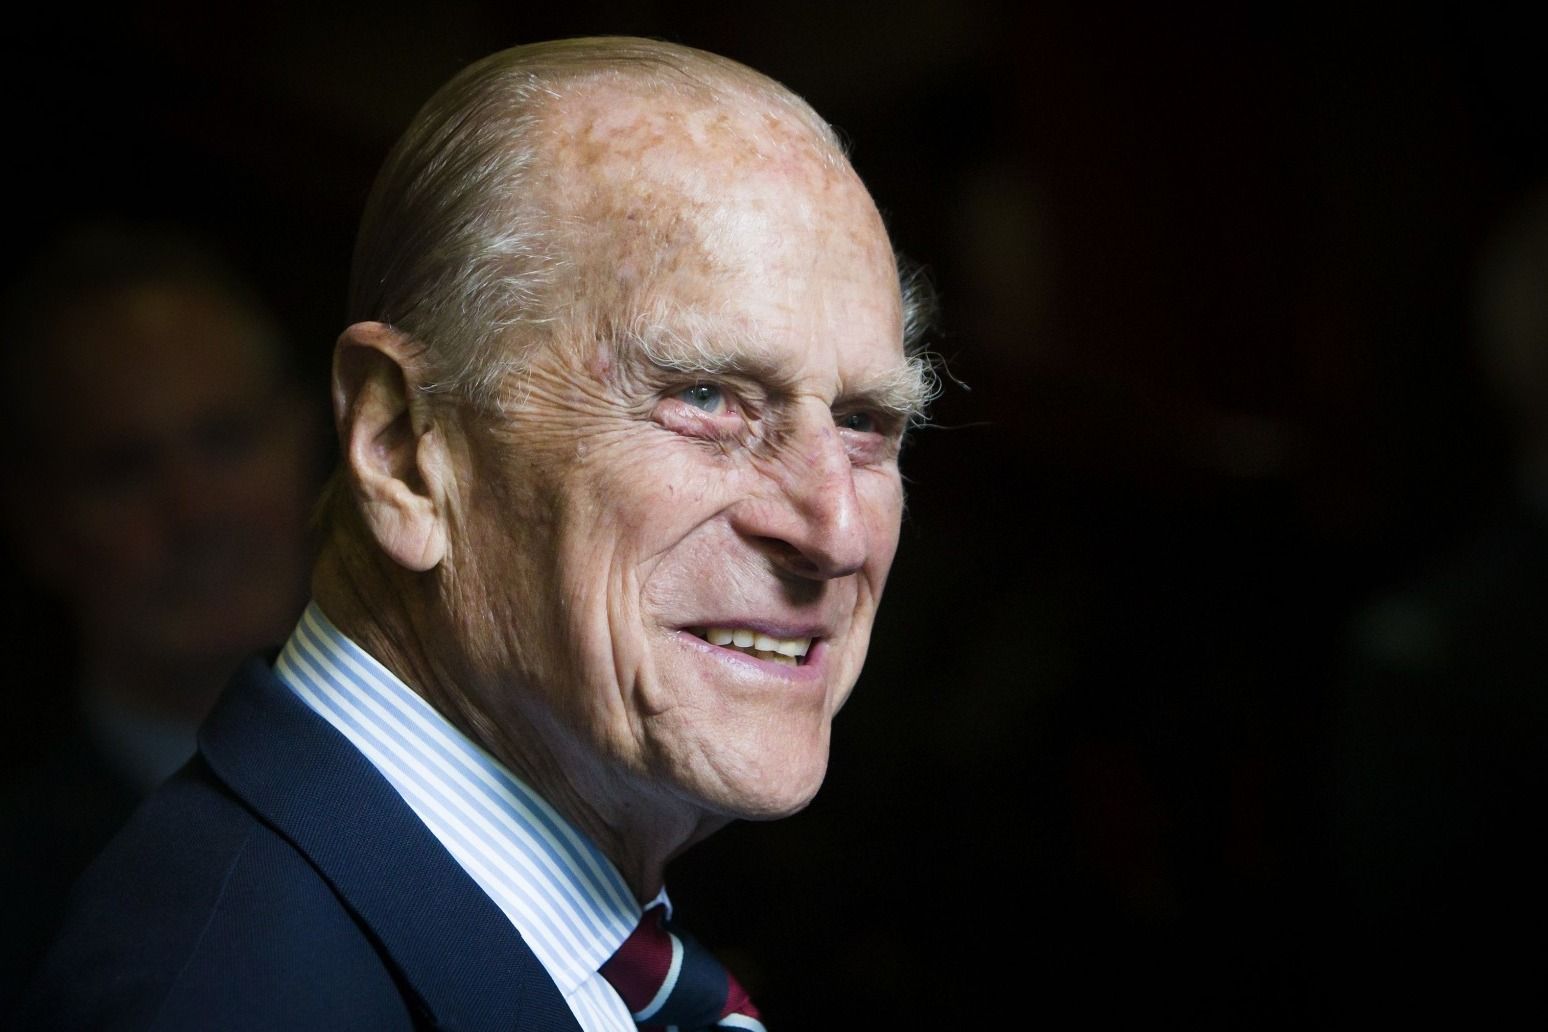 The Duke of Edinburgh has died at the age of 99